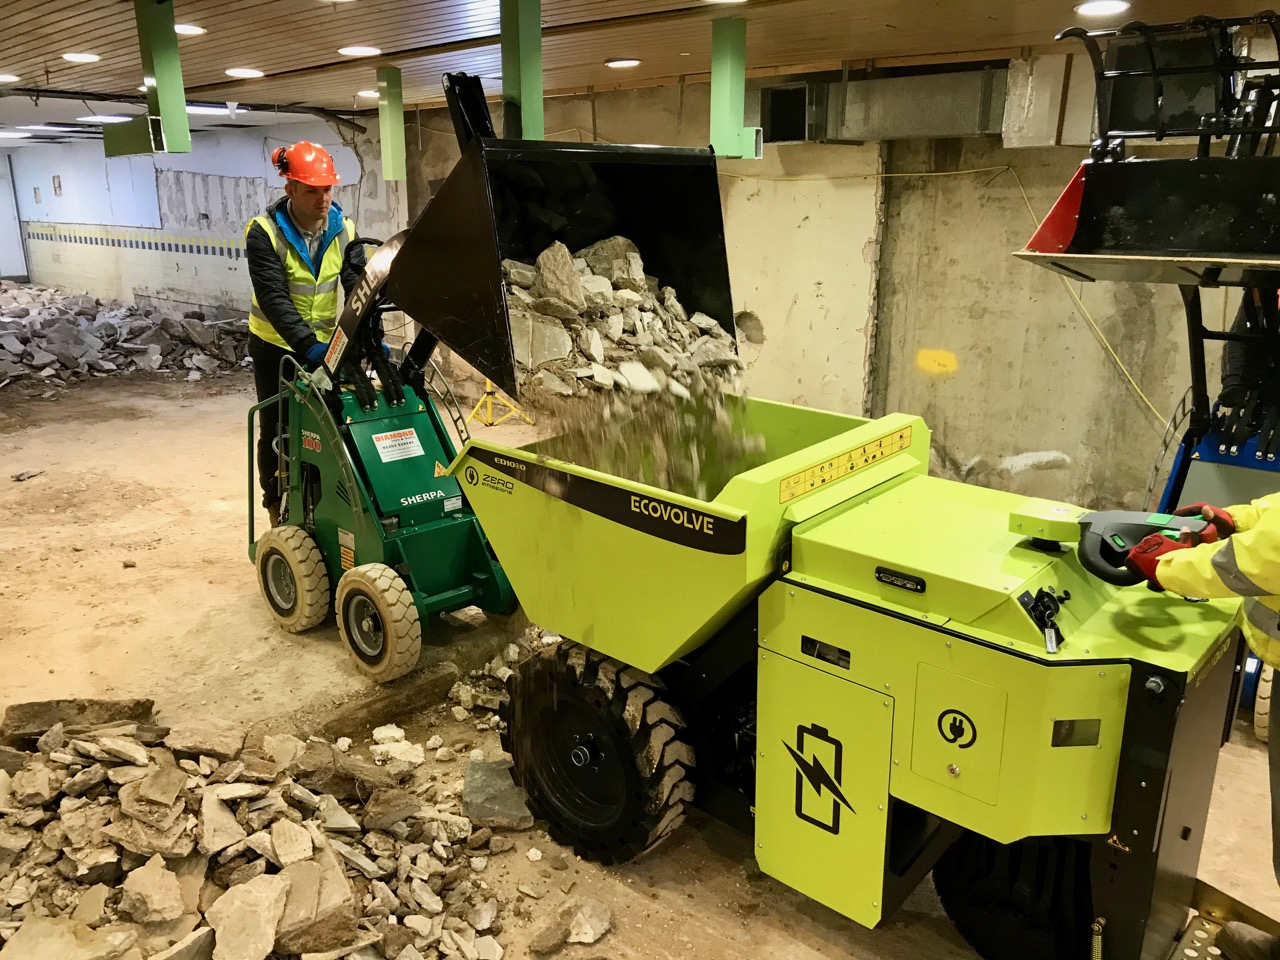 Ecovolve Electric Dumper being loaded by a Sherpa Electric Mini loader on a demolition site